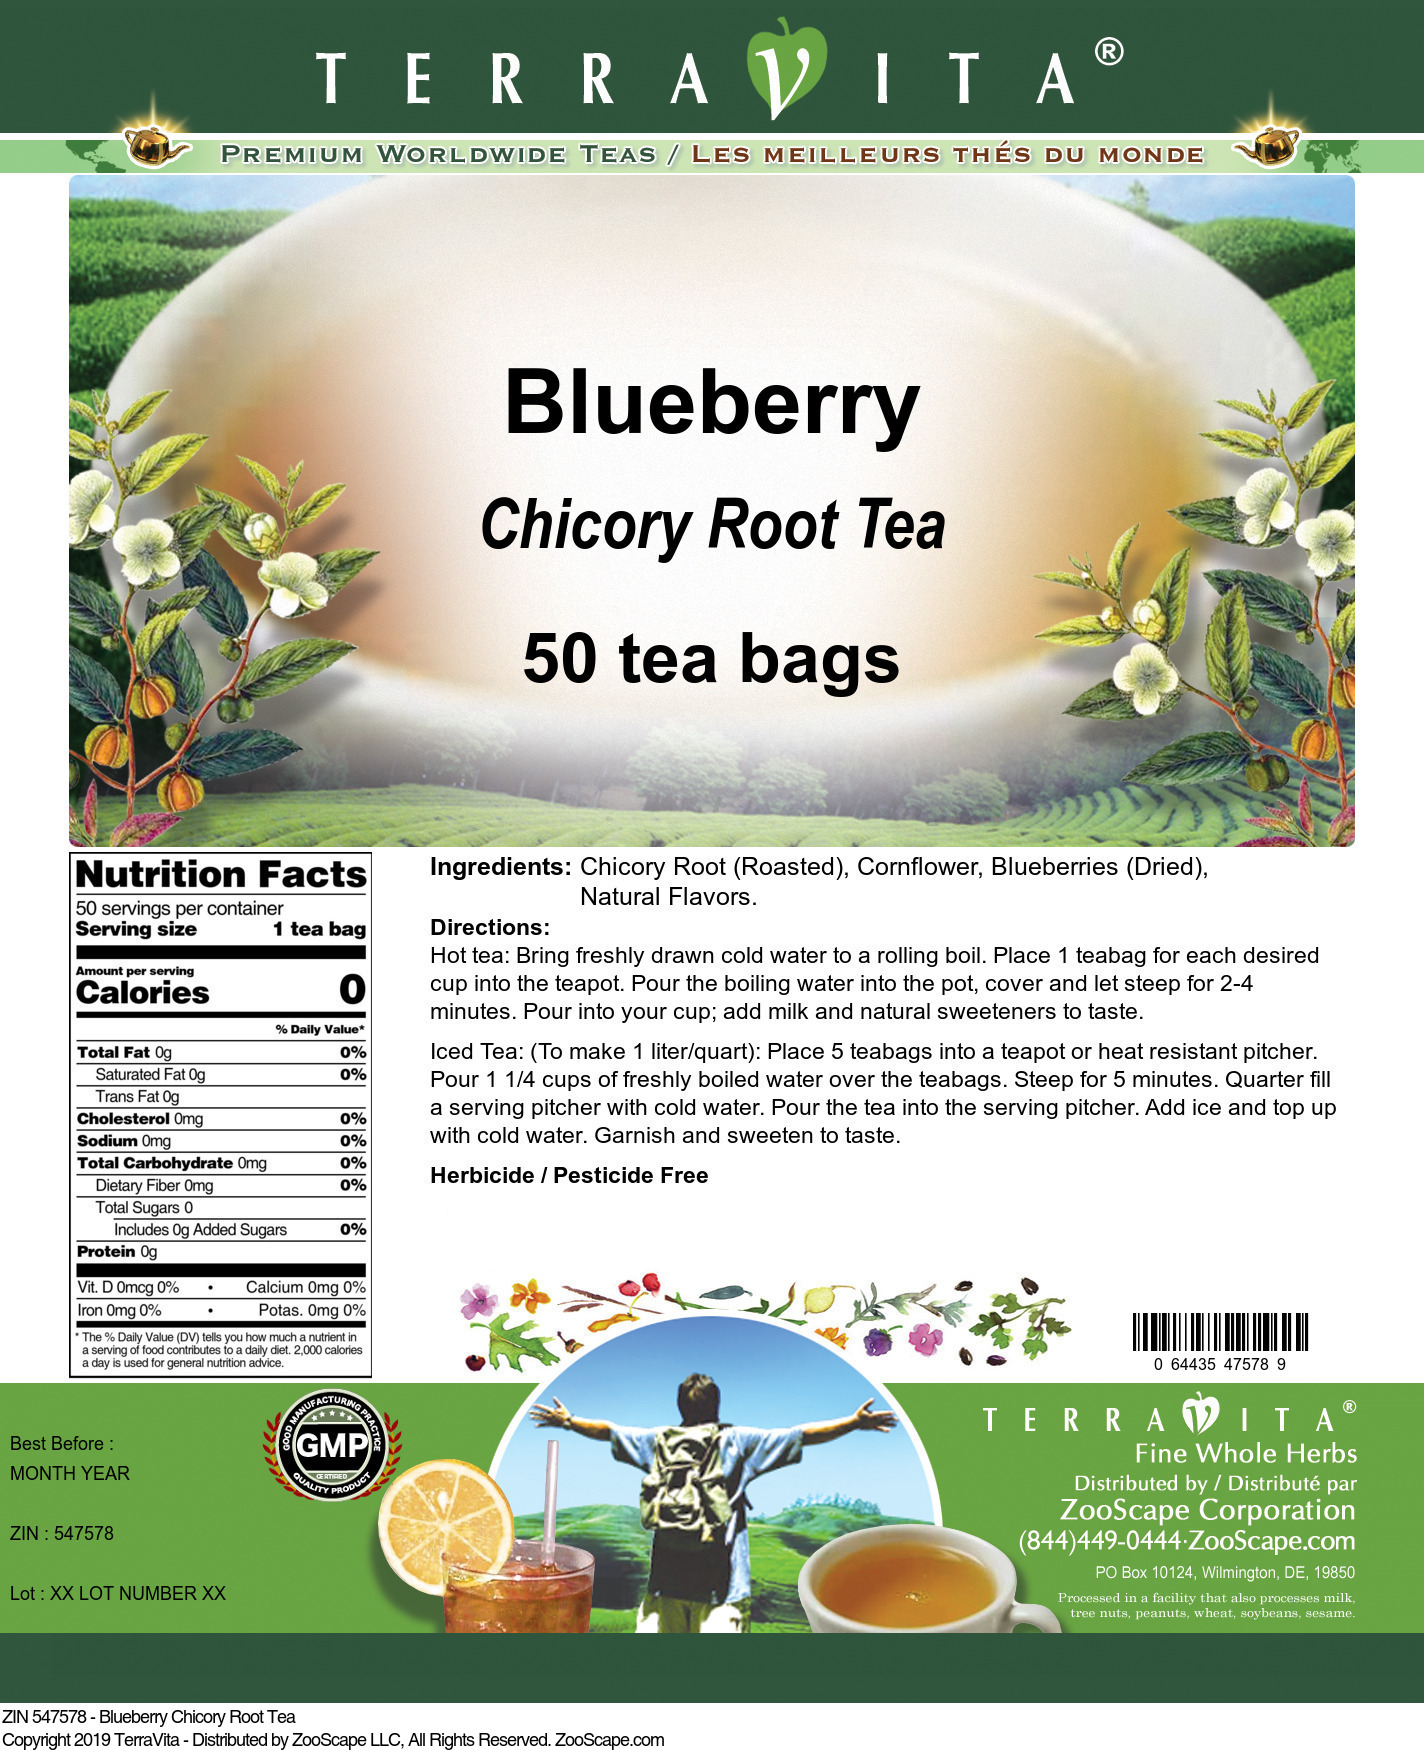 Blueberry Chicory Root Tea